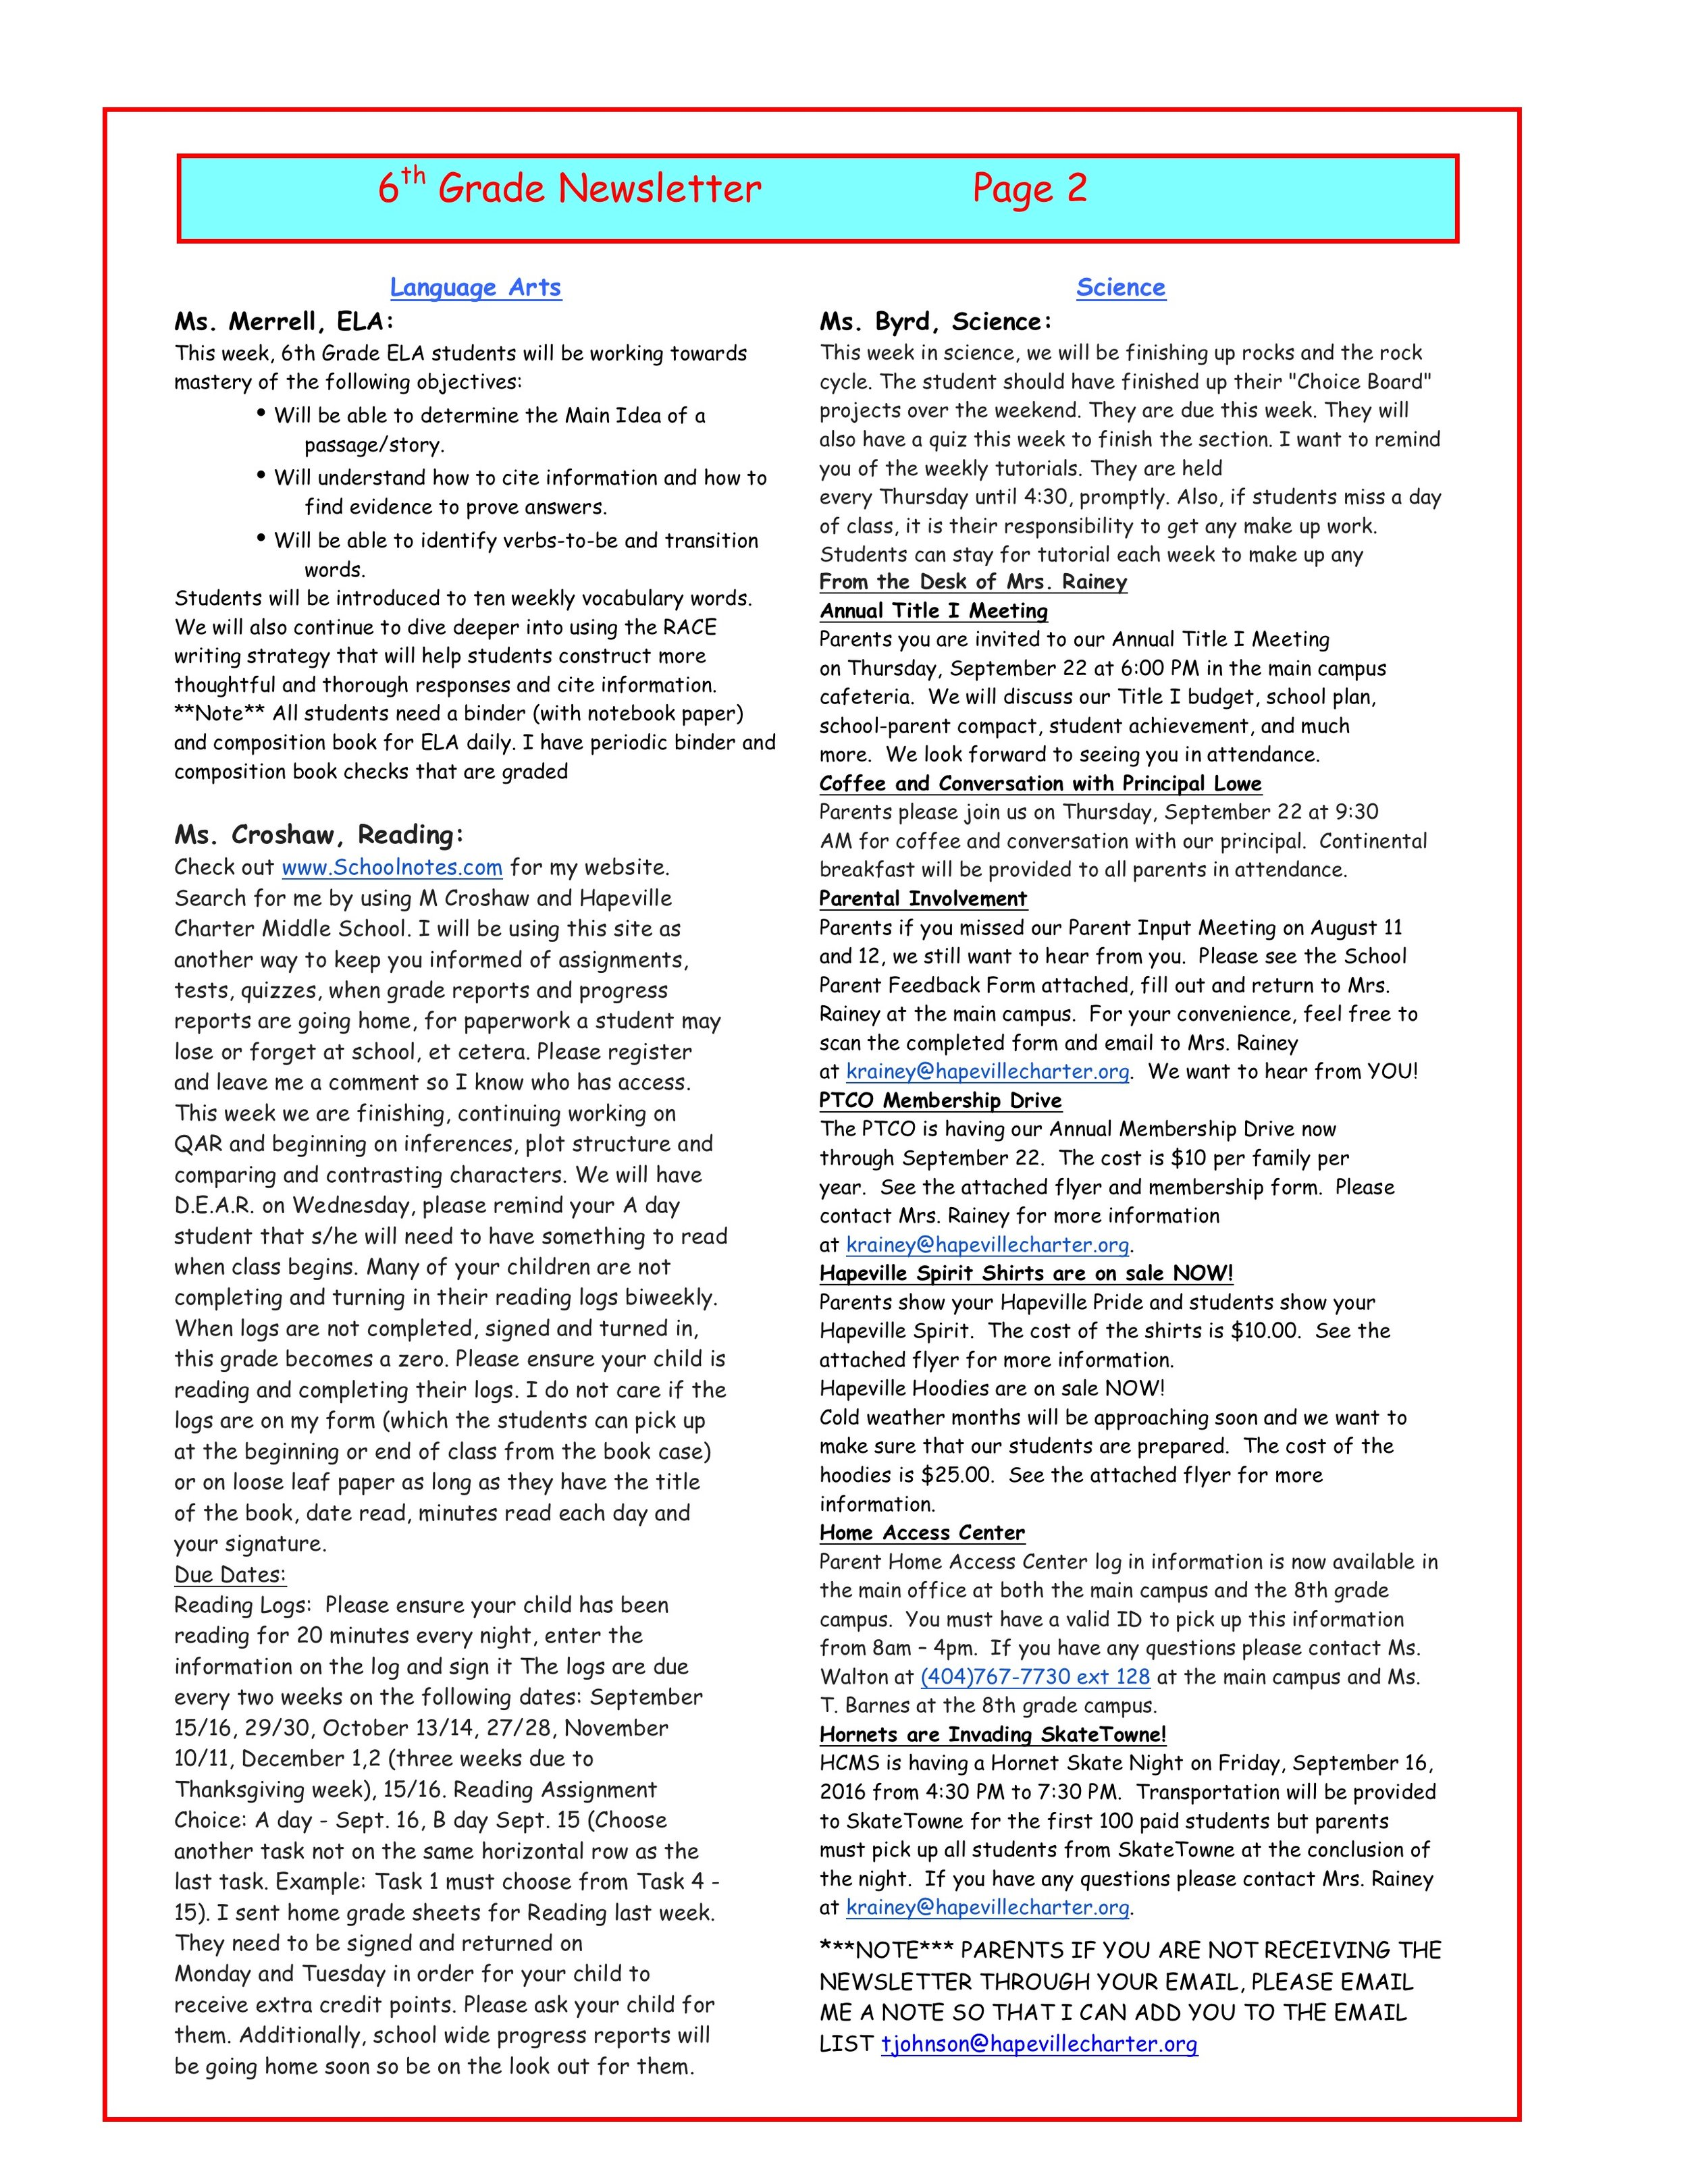 Newsletter Image6th Grade Newsletter 9-12 2.jpeg